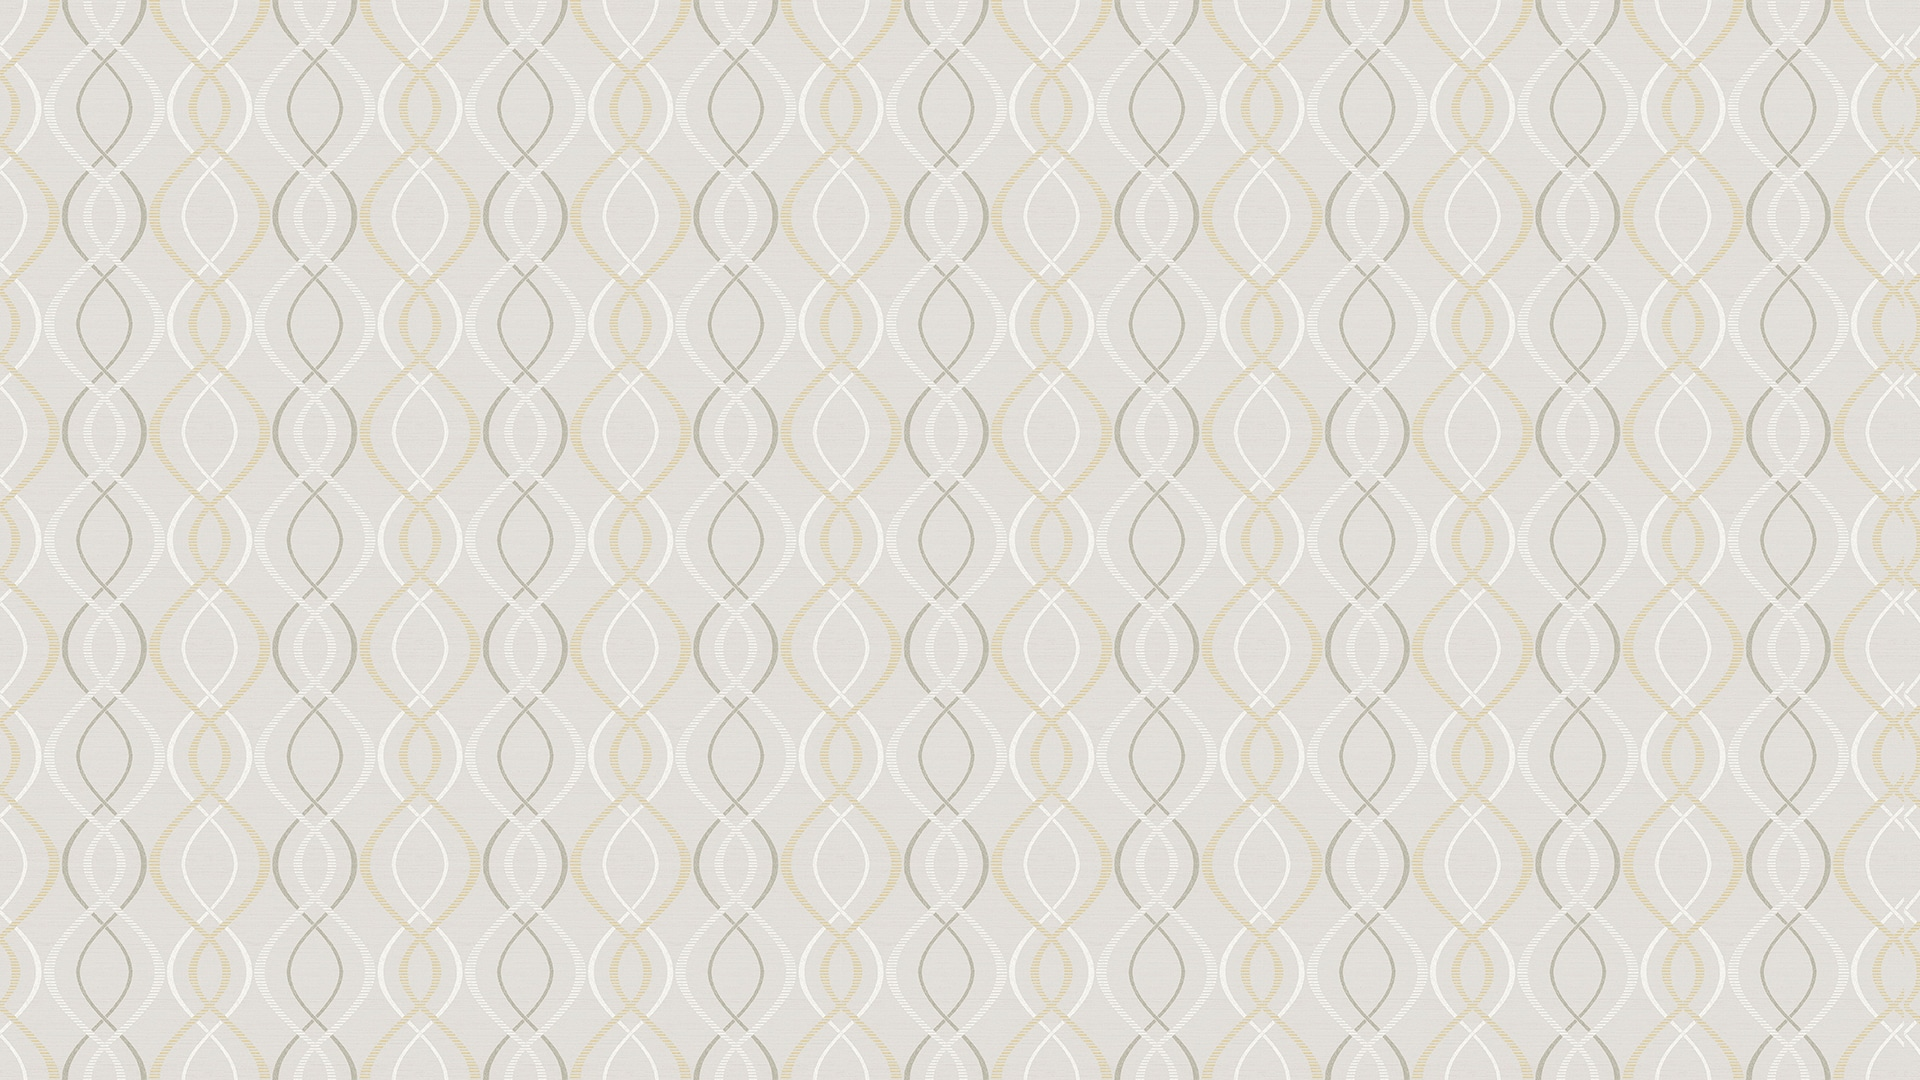 Wallpaperwednesday Four New Scott Living Patterns The Scott Brothers